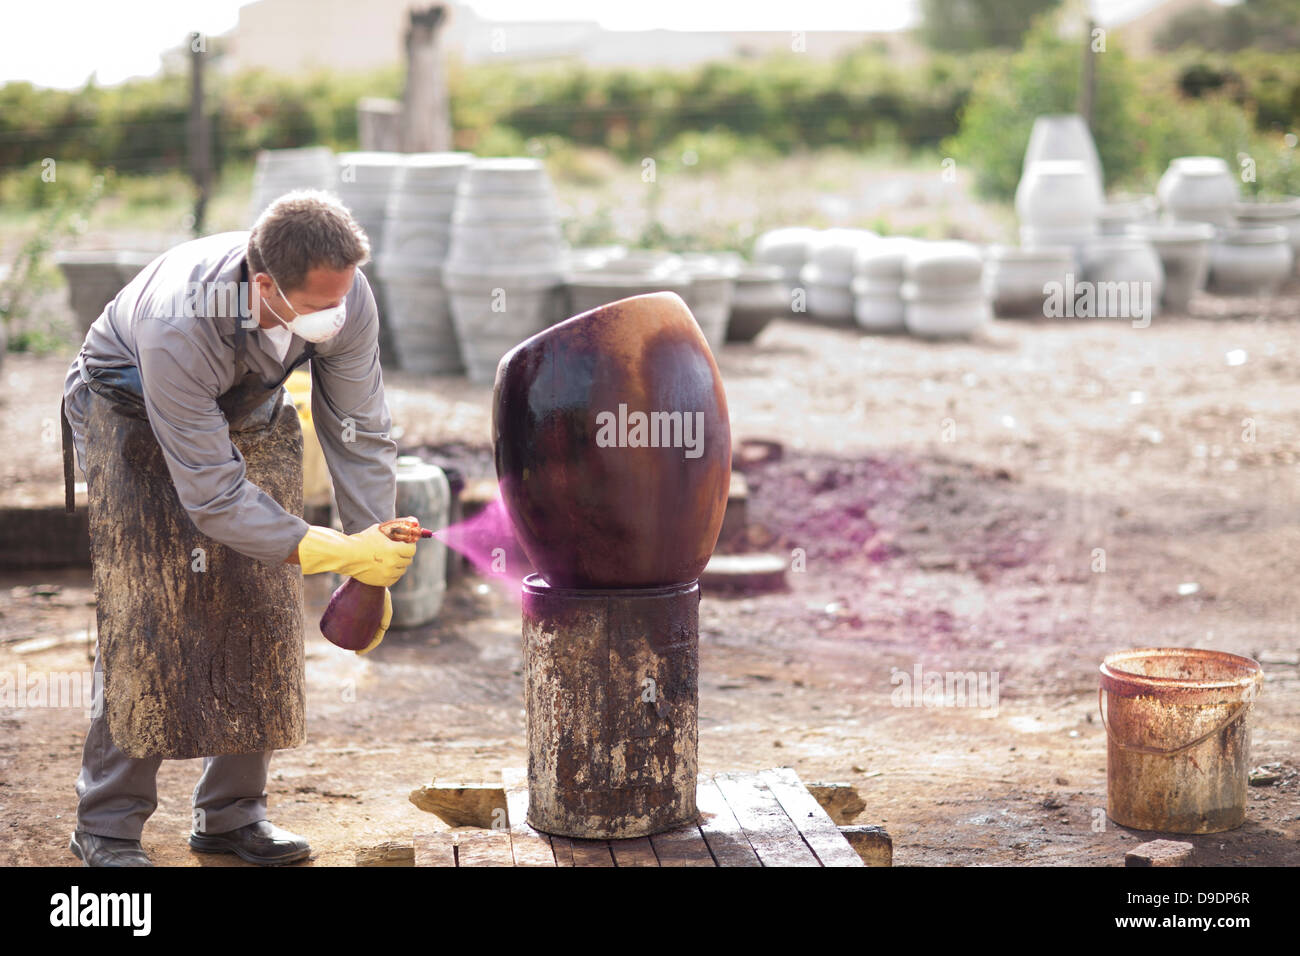 Spray painting a pot in the yard - Stock Image